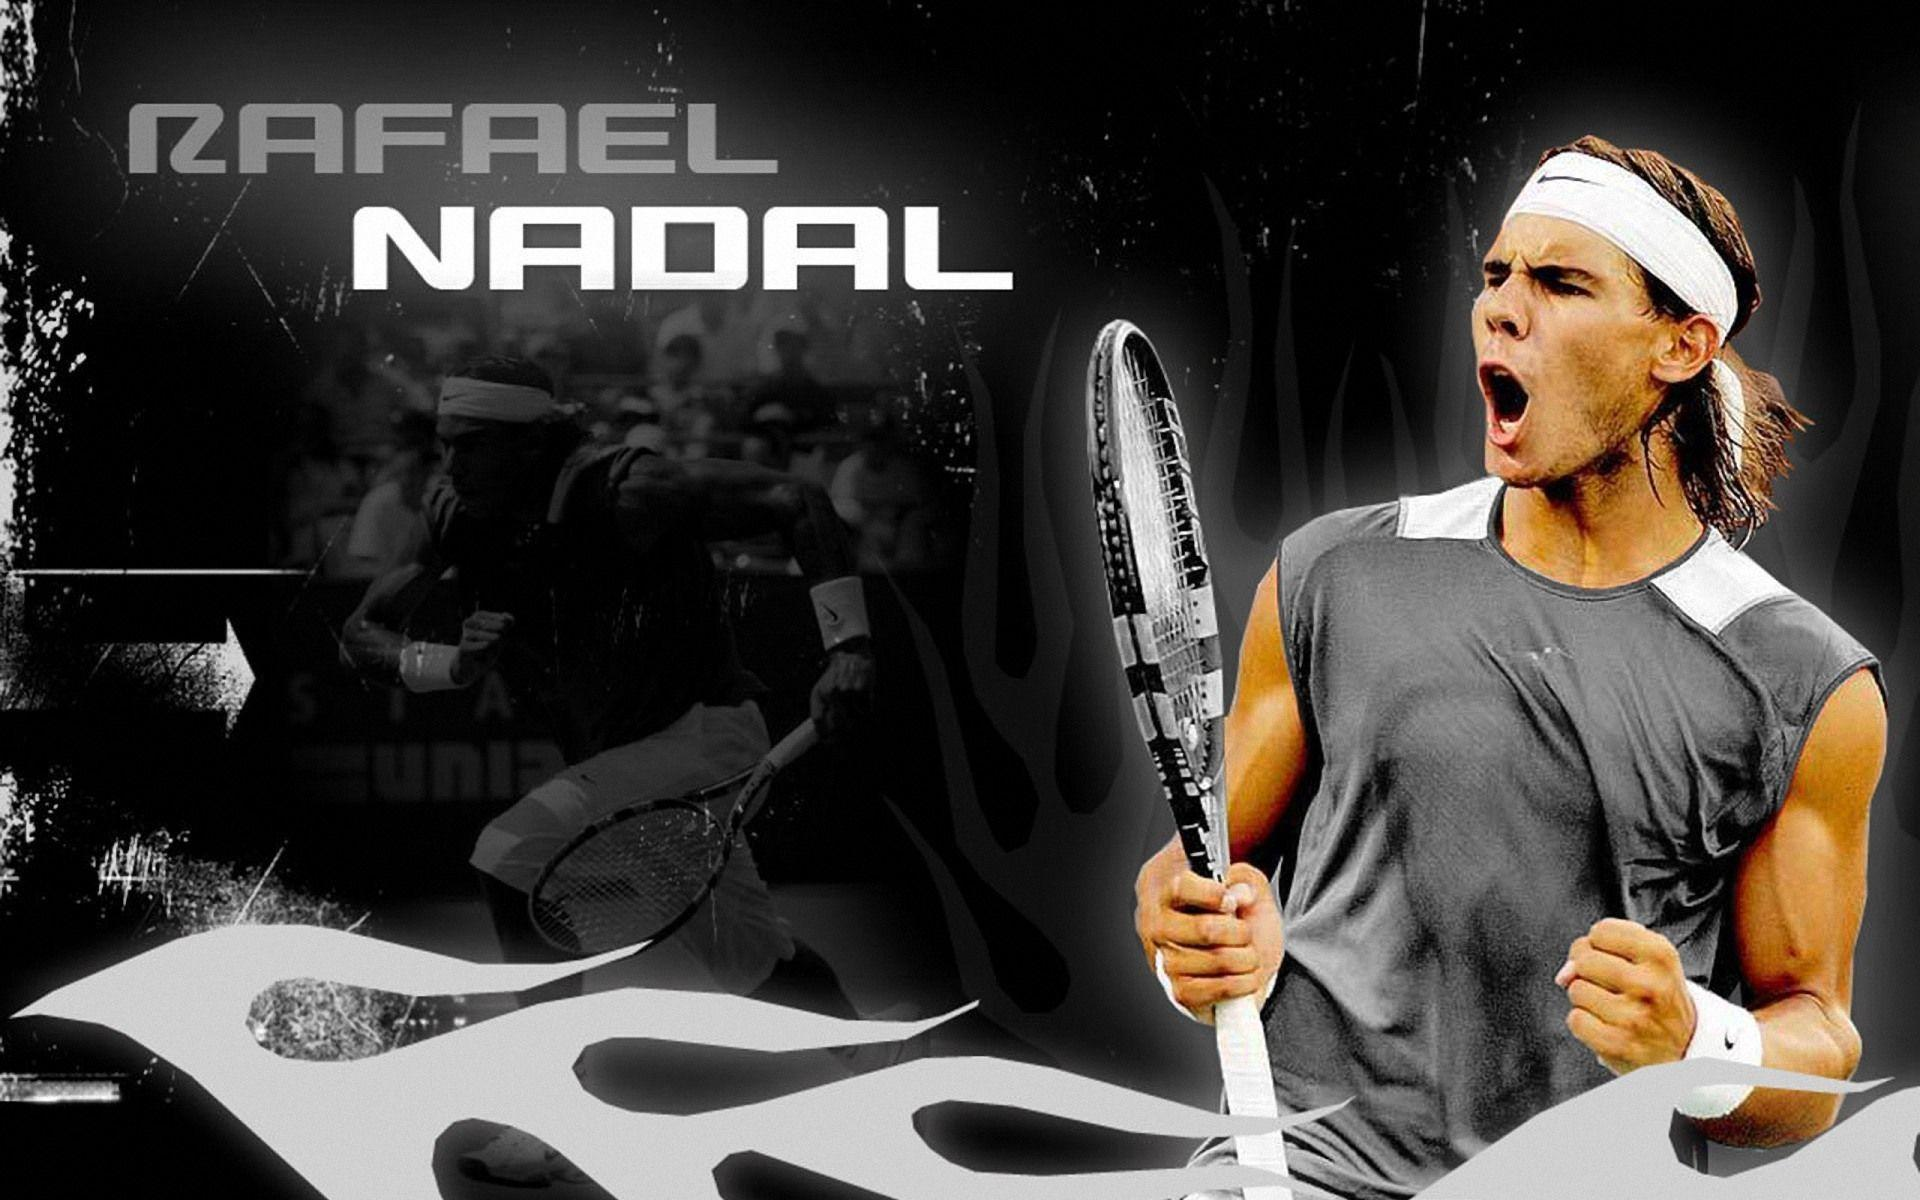 Rafael Nadal HD Wallpapers